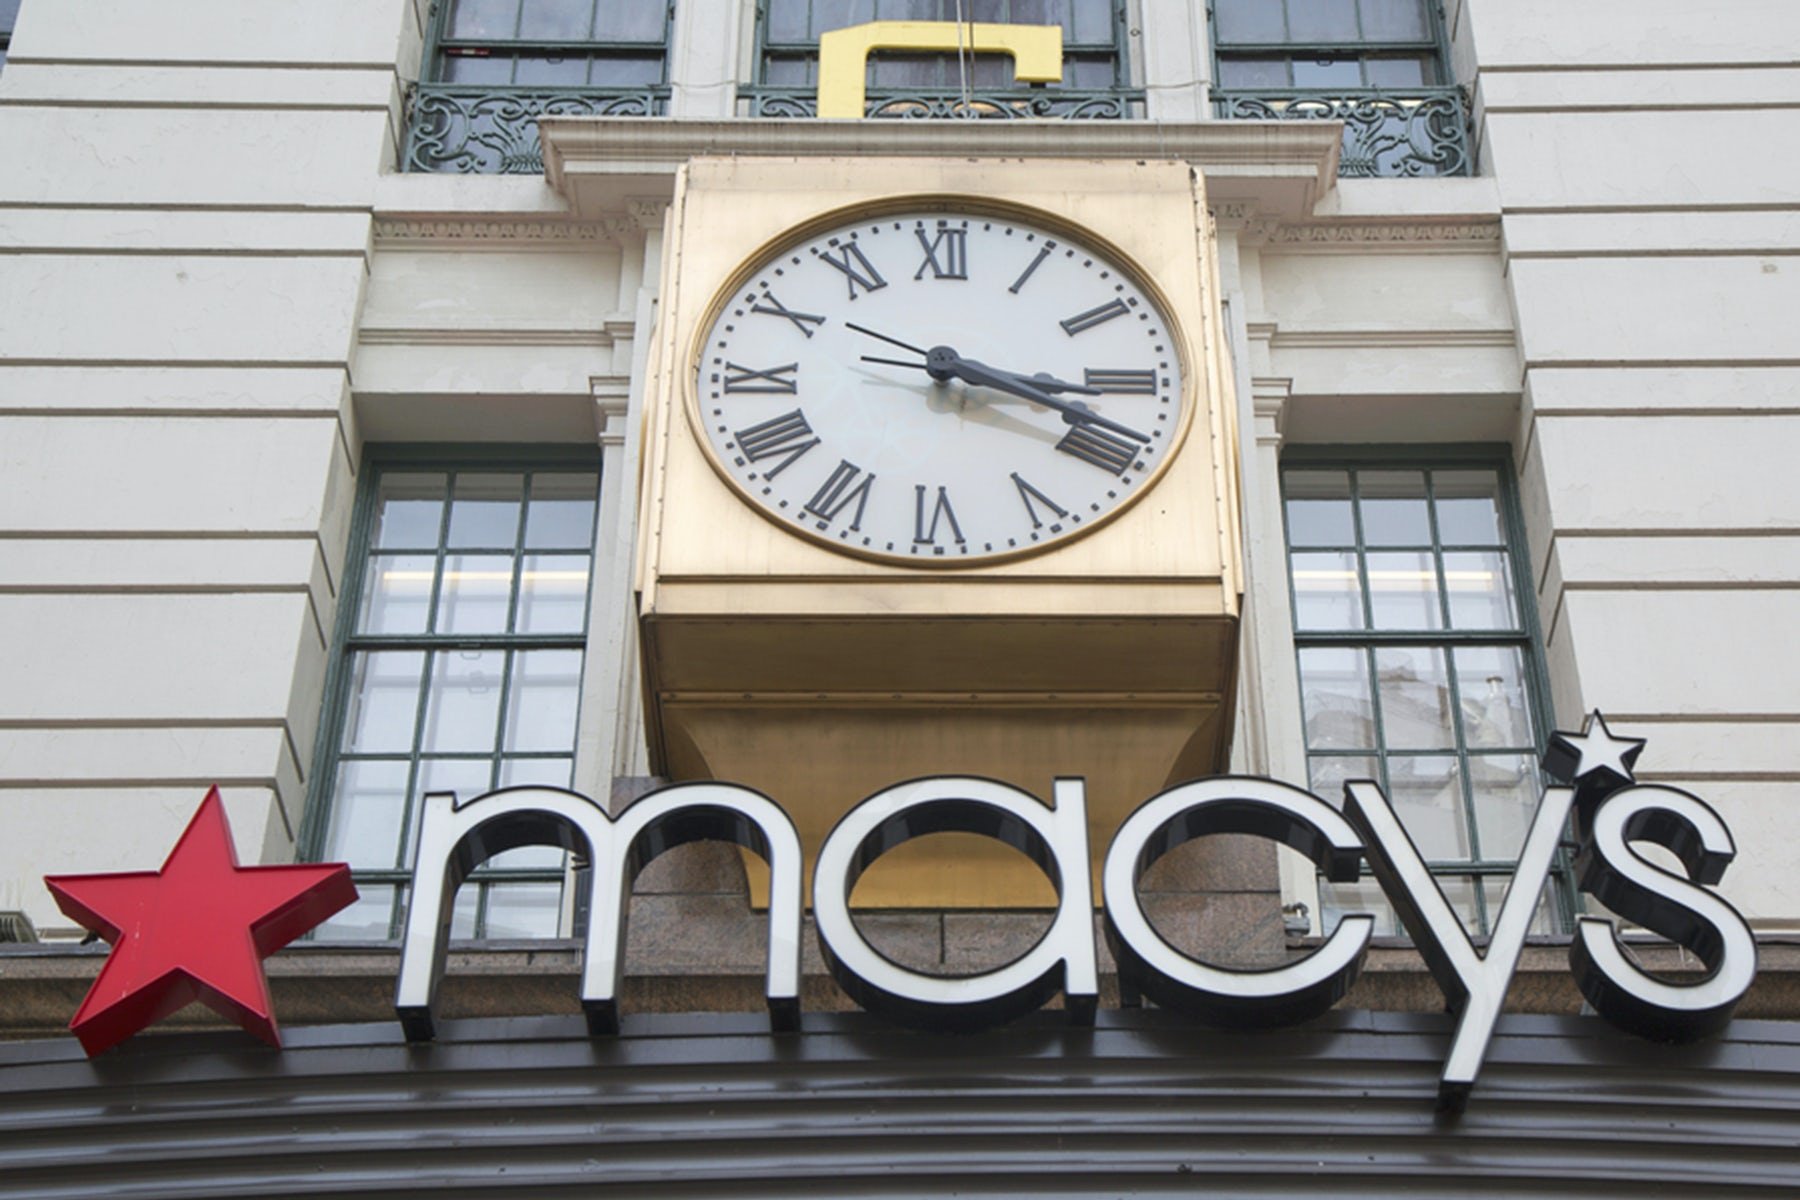 an analysis of macys This year, macy's is closing 68 locations and sears holdings  for this analysis,  we looked at the foot traffic patterns from 2016 for kmart and.